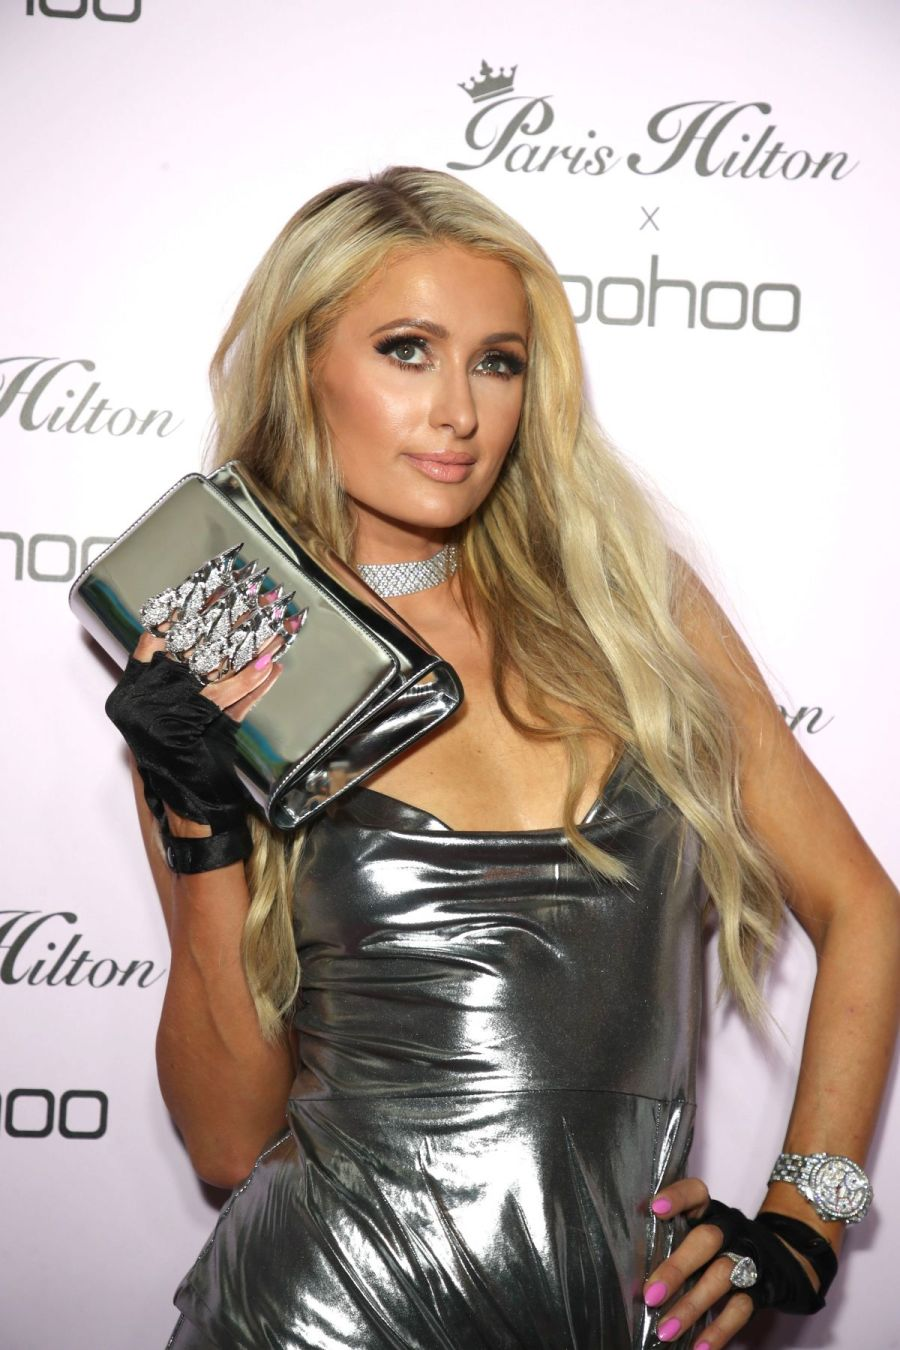 paris-hilton-at-boohoo-x-paris-hilton-launch-party-in-los-angeles-06-20-2018-21